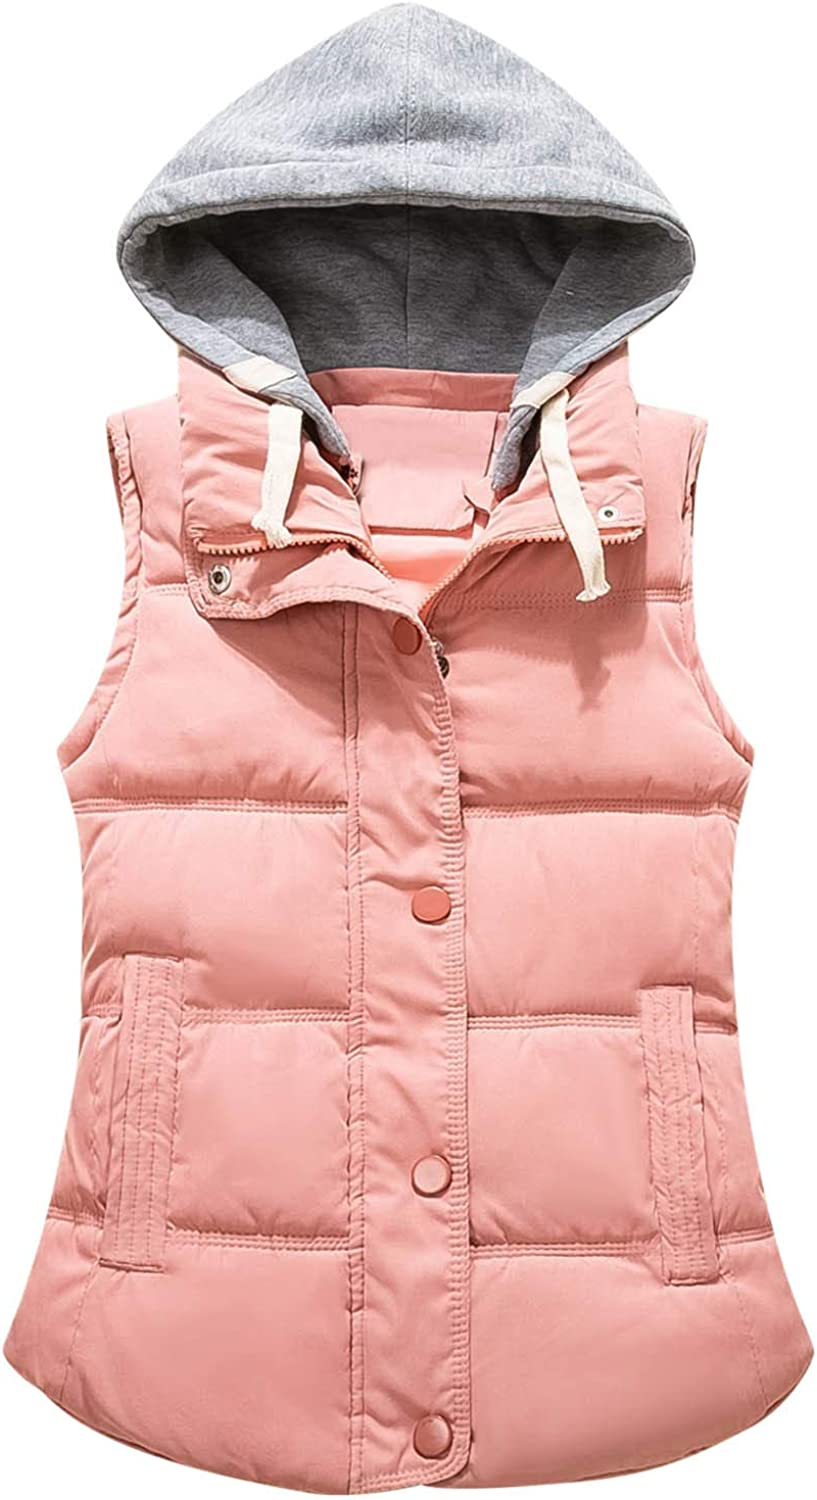 Womens Sleeveless Vest Warm Coat Solid Color Quilted Button Zip Up Gilet Drawstring Removable Hooded Outerwear Winter Short Puffer Coat with Pockets Casual Vest Down Outdoor